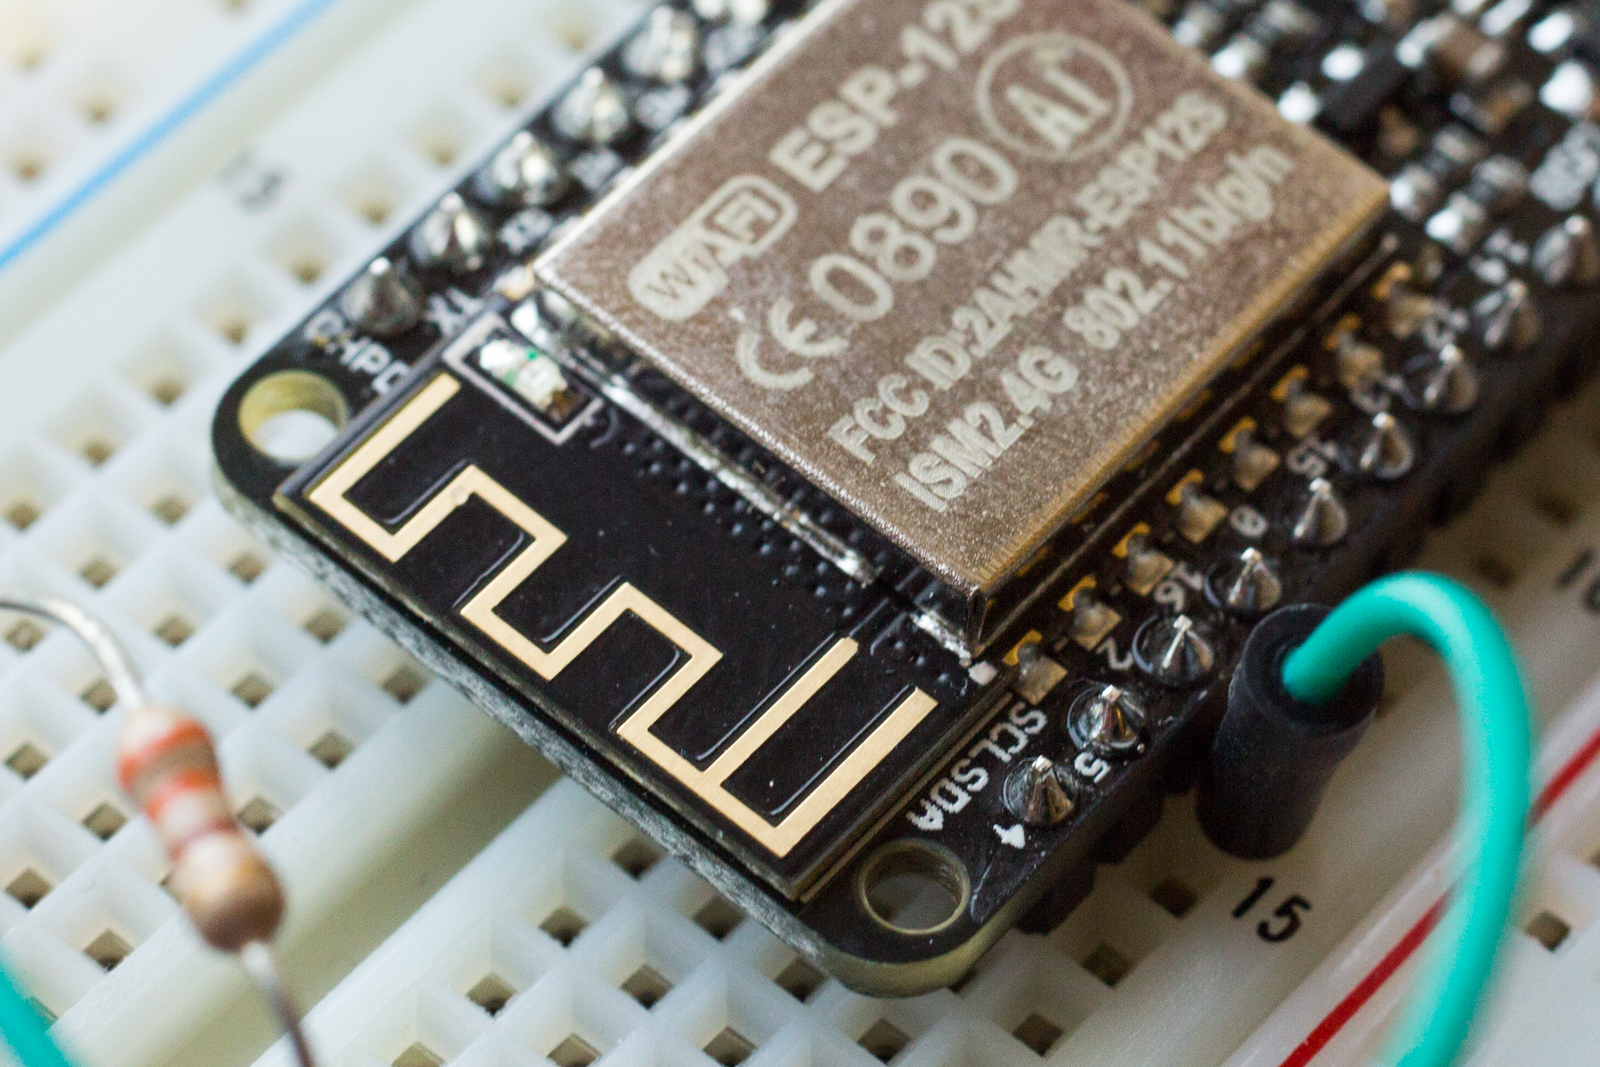 Close up photo of a radio antenna on a Adafruit Feather board.